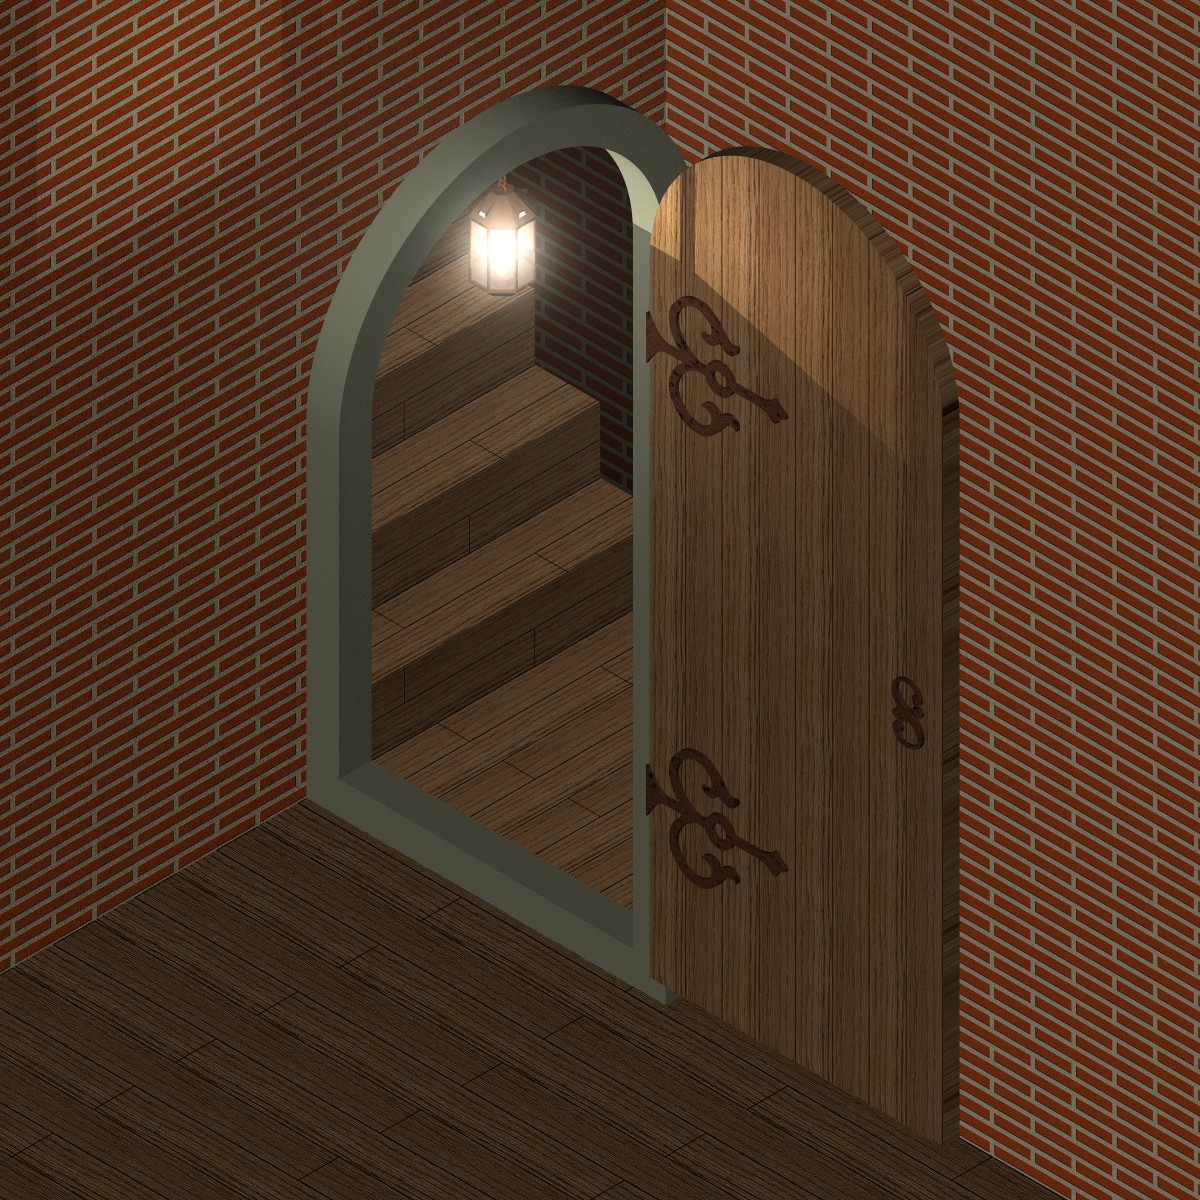 can you see the door illusion